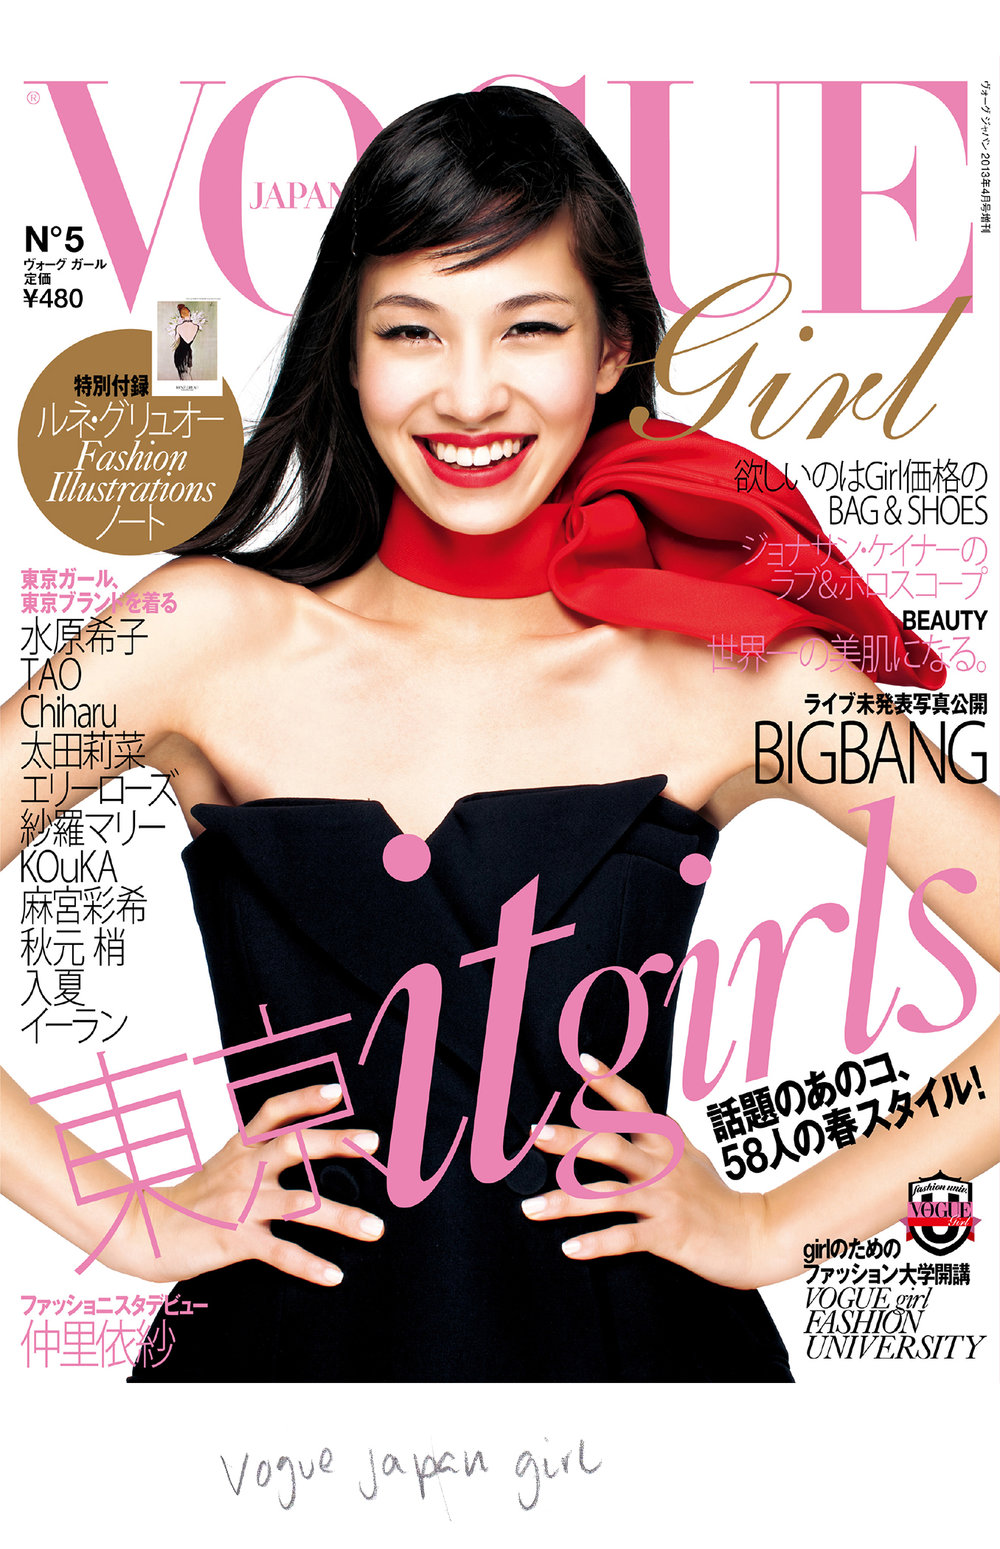 vogue girl-1frannyweb.jpg